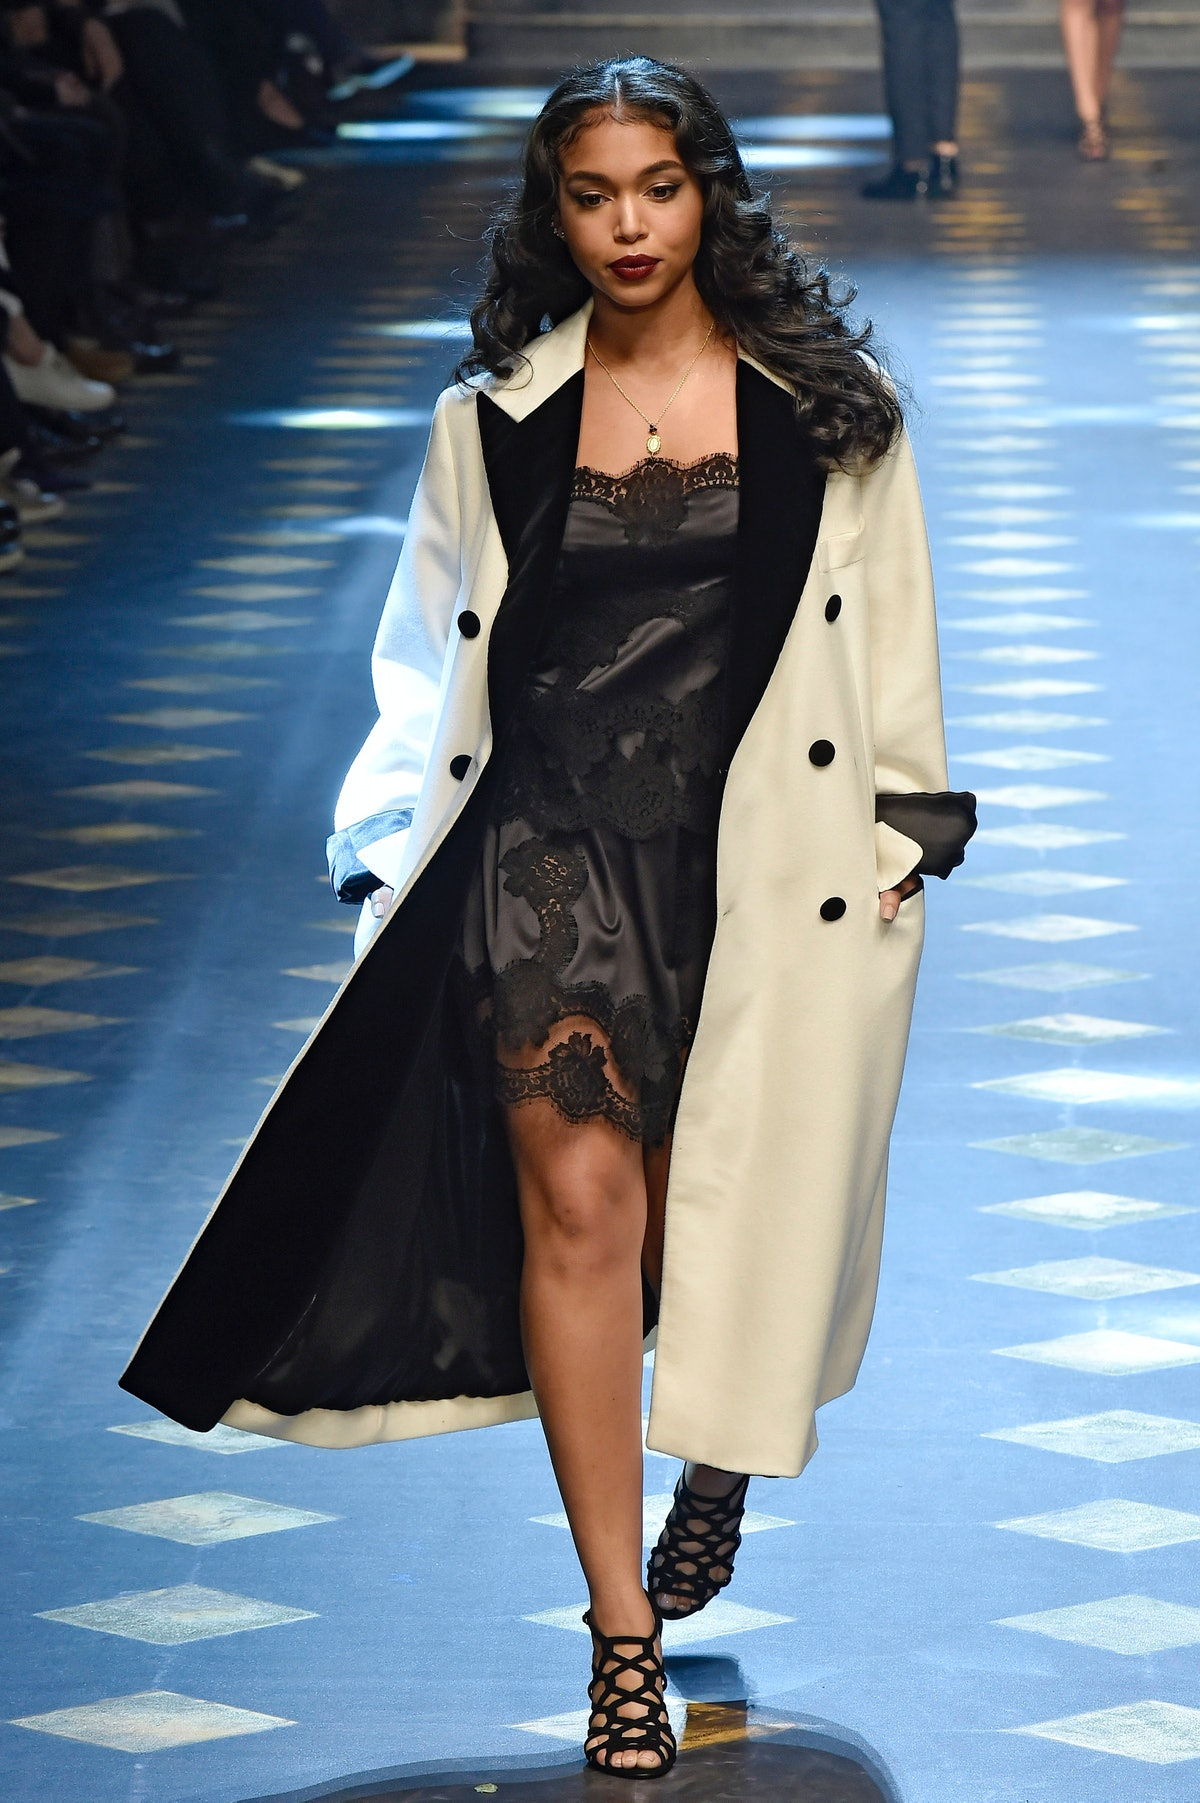 MILAN, ITALY - JANUARY 14:  Lori Harvey walks the runway at the Dolce & Gabbana Autumn Winter 2017 fashion show during Milan Menswear Fashion Week on January 14, 2017 in Milan, Italy.  (Photo by Catwalking/Getty Images)